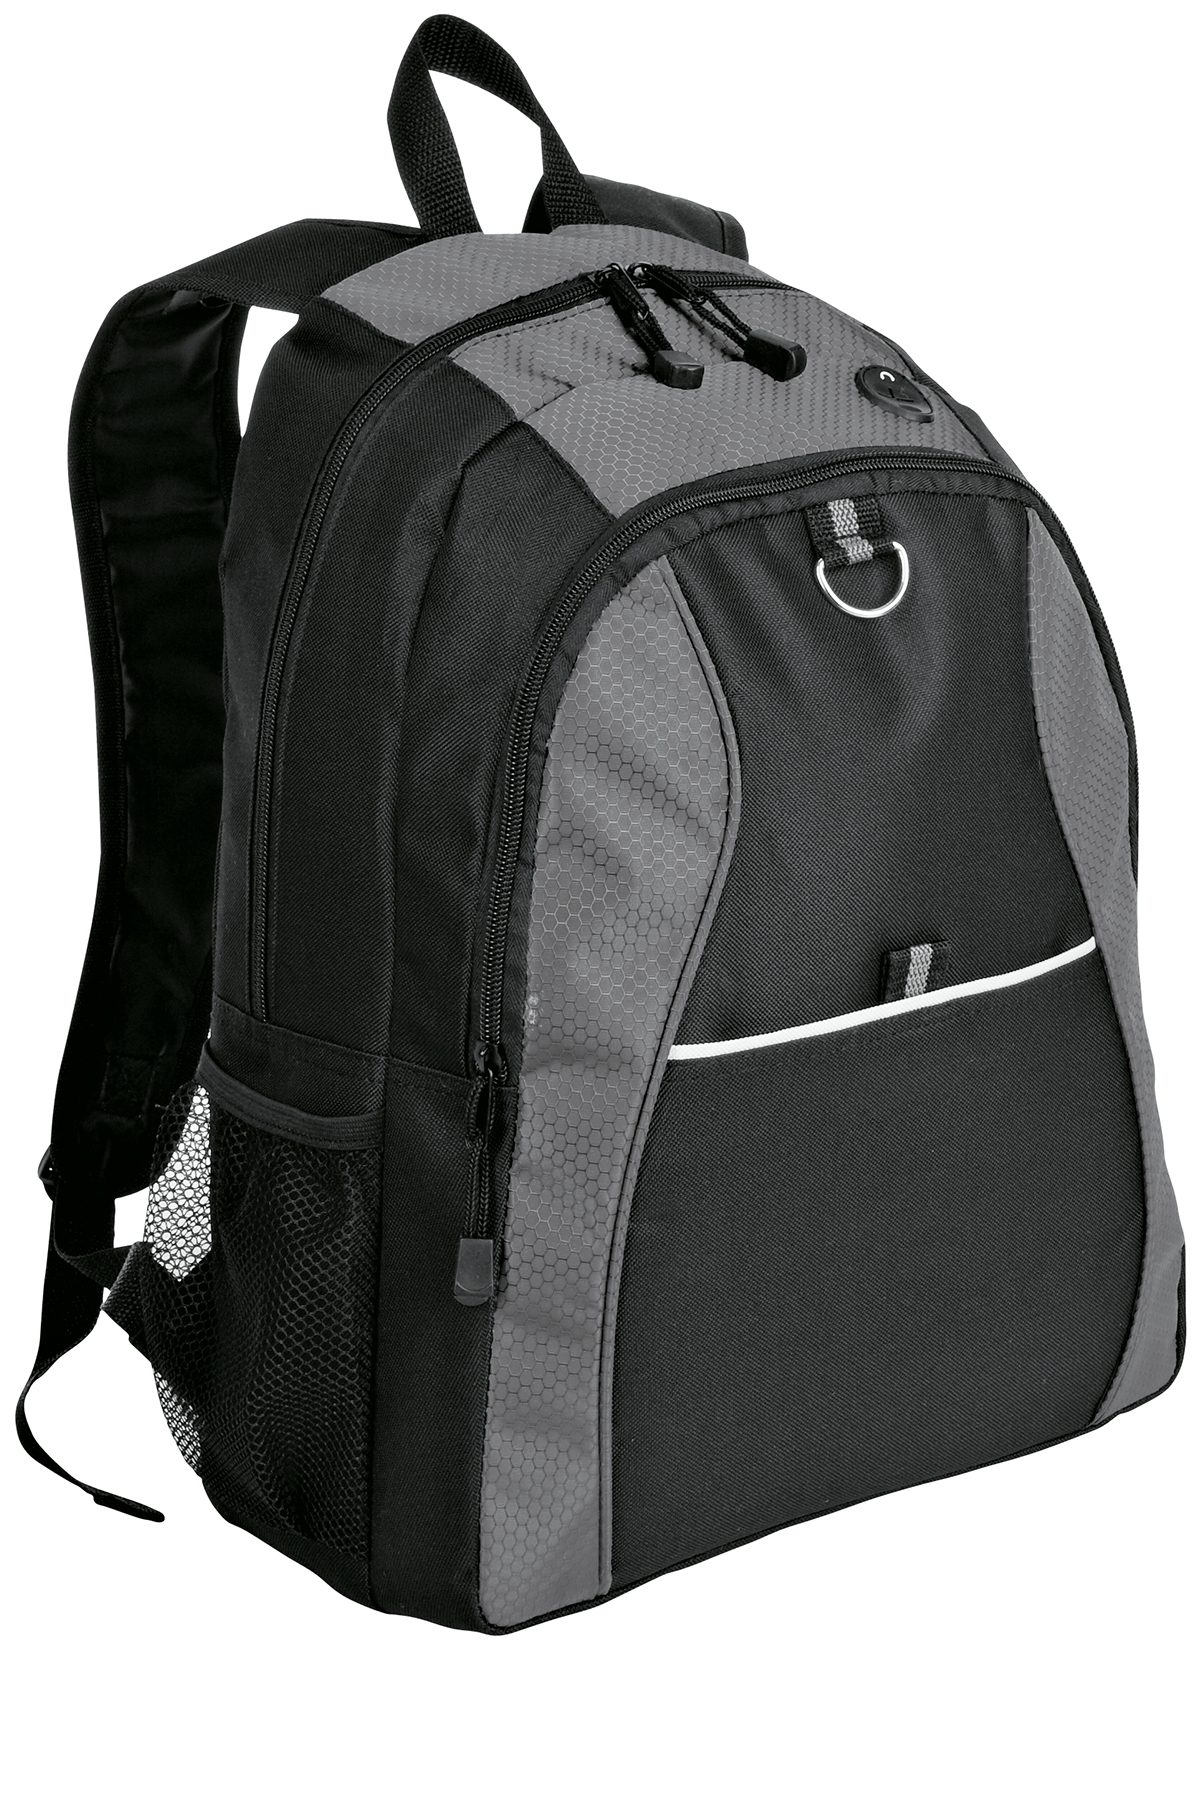 Port Authority BG1020 - Contrast Honeycomb Backpack